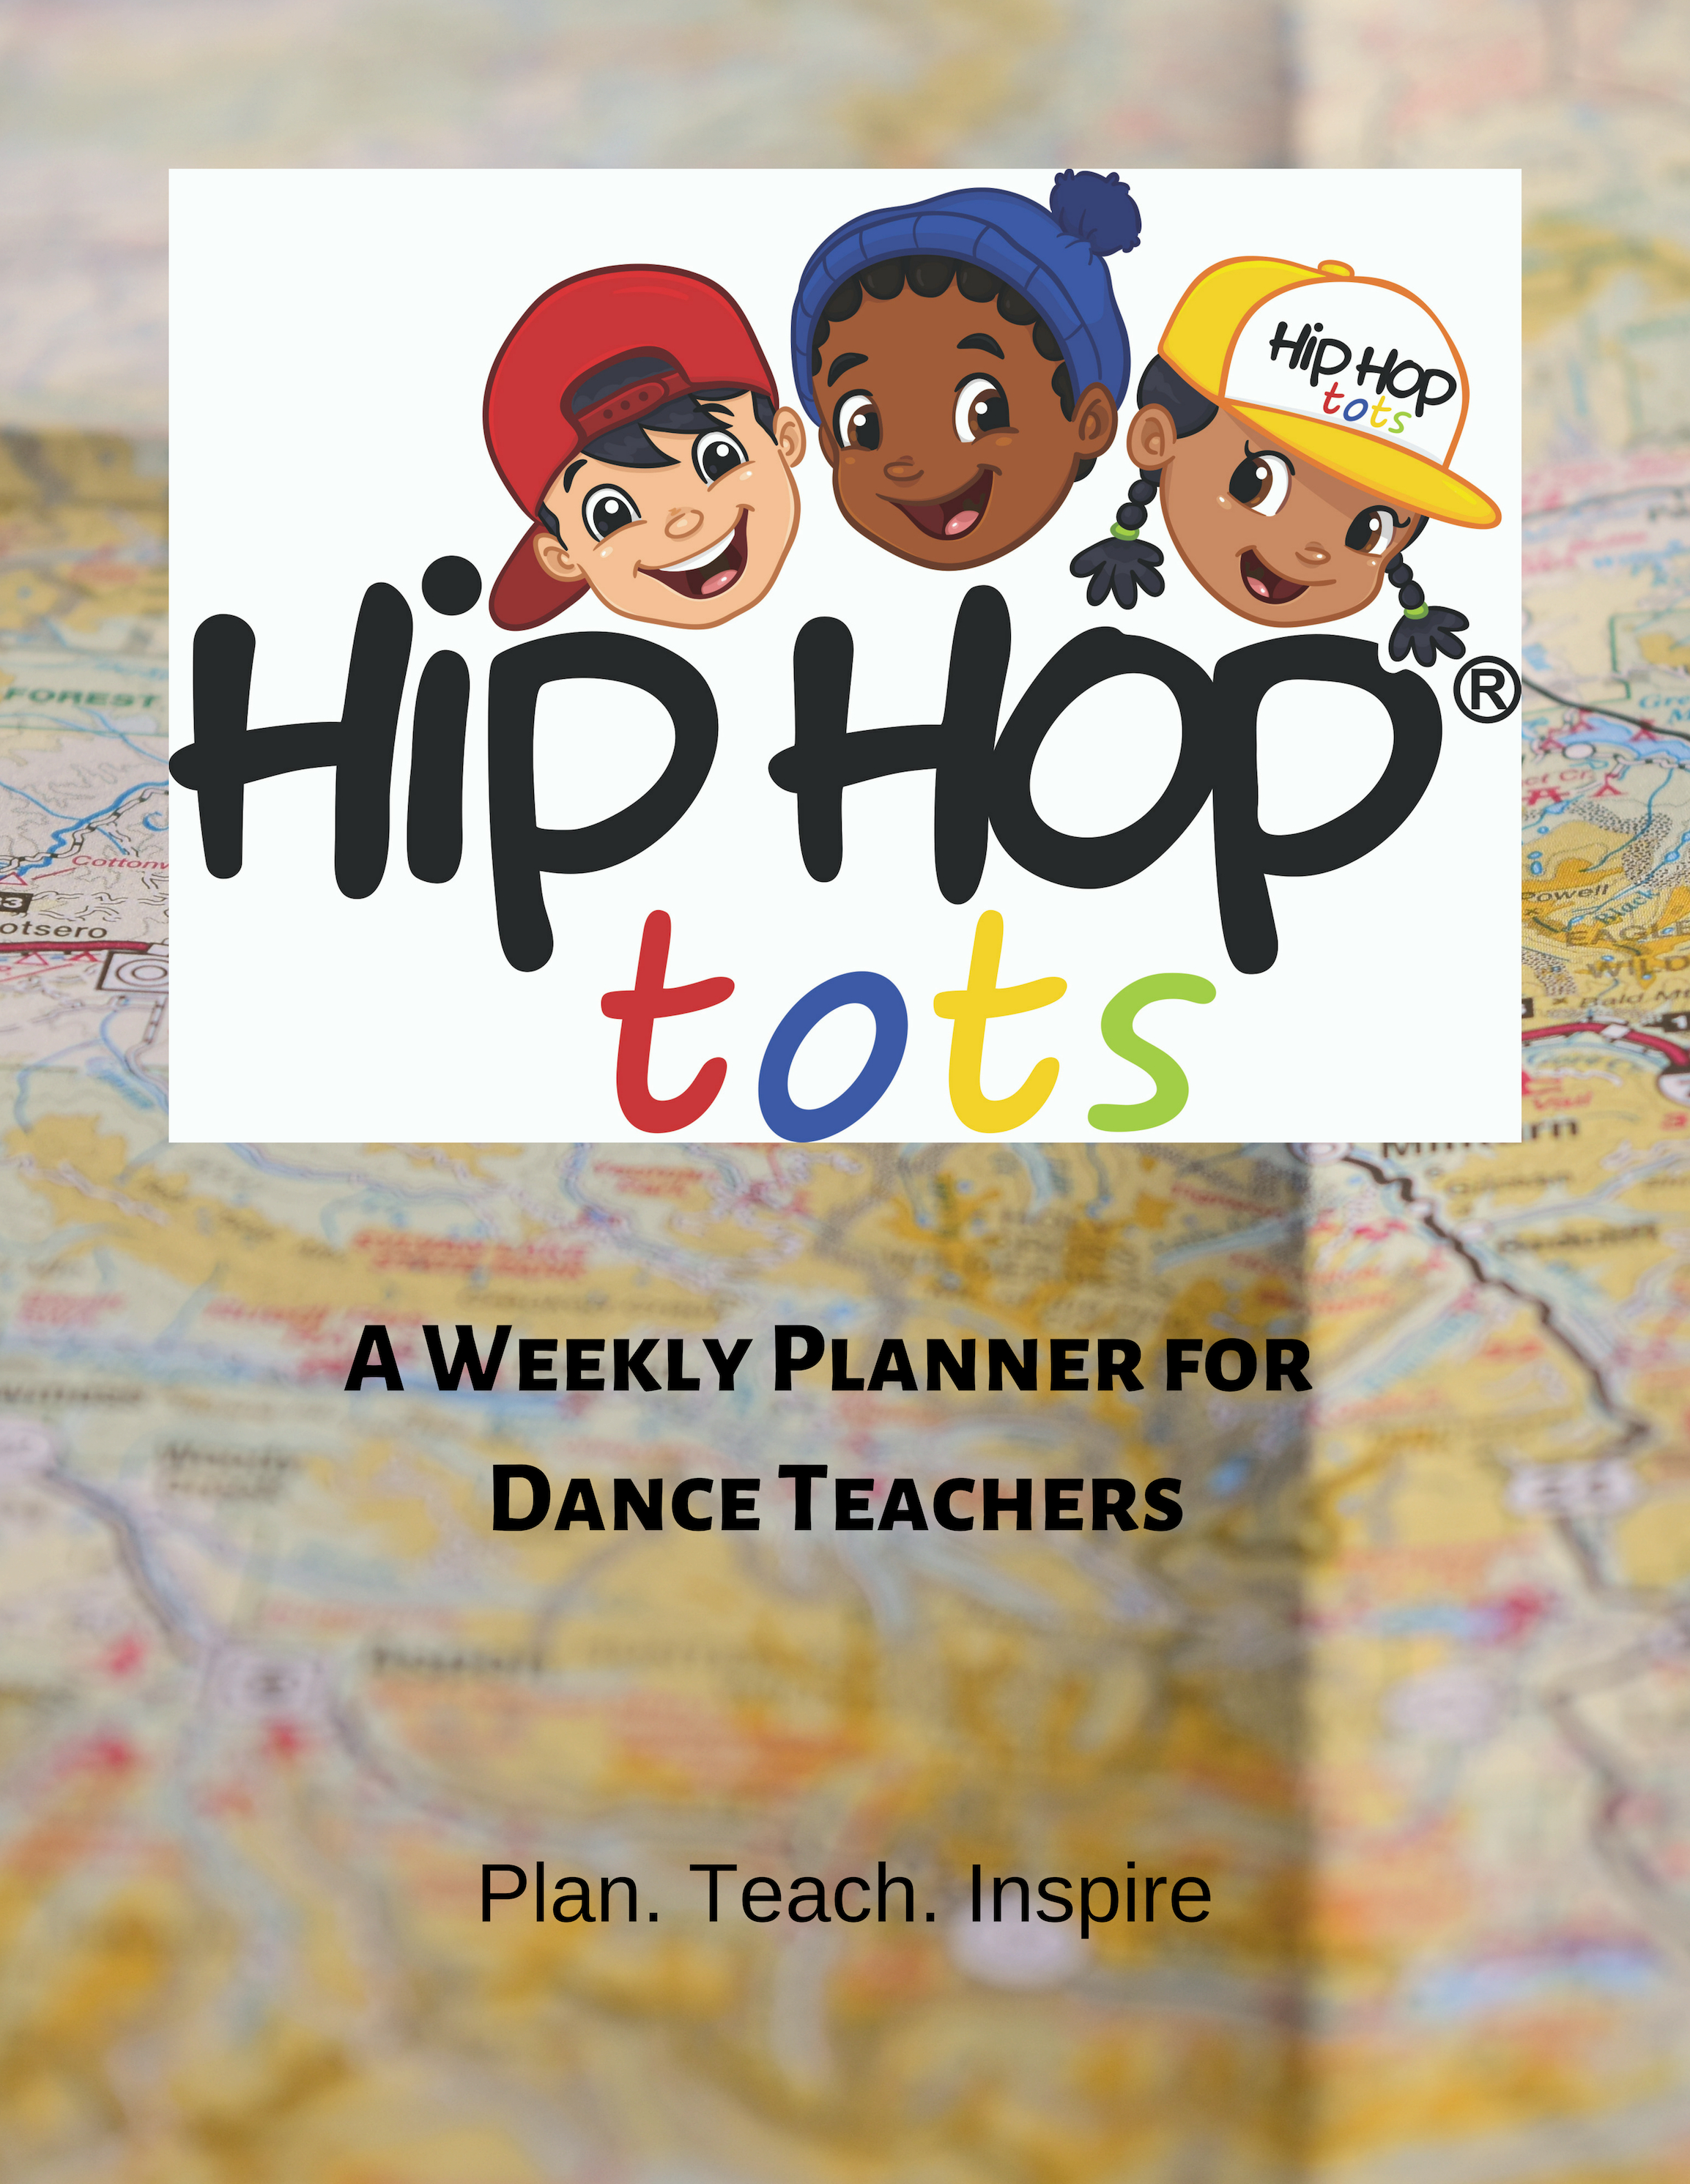 Hip Hop Tots Weekly planner for dance teachers